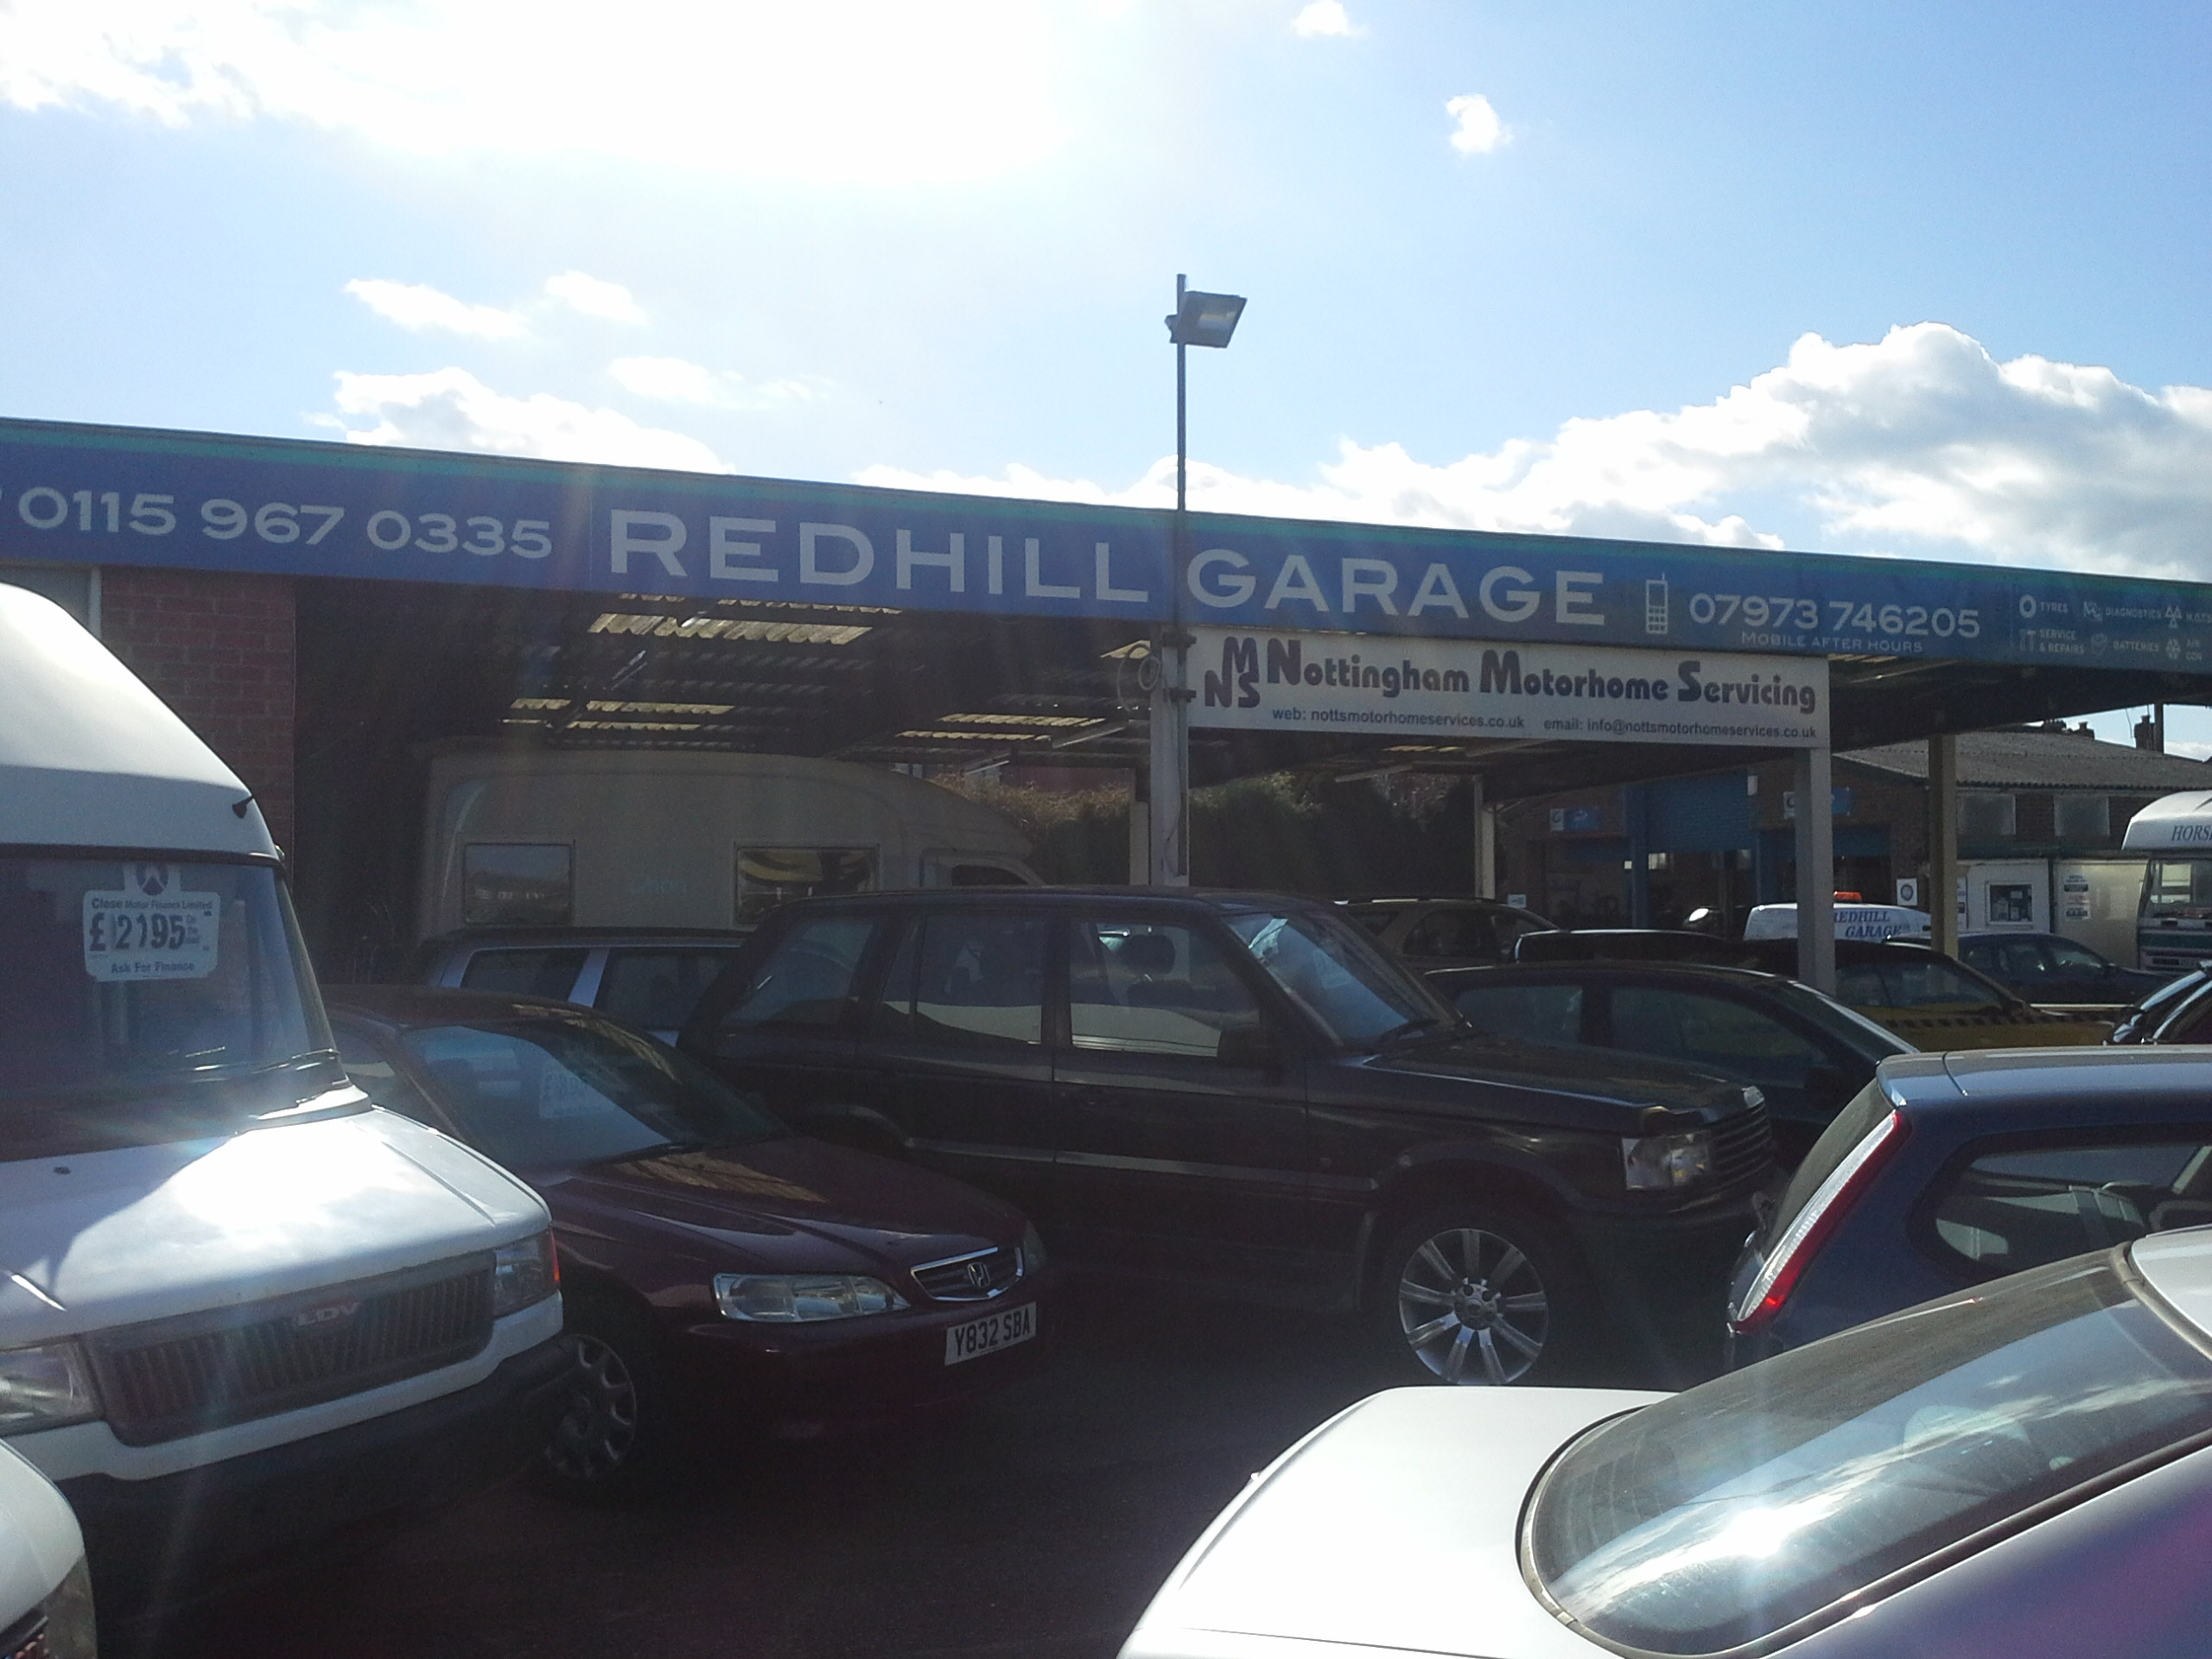 Redhill Garage Ltd